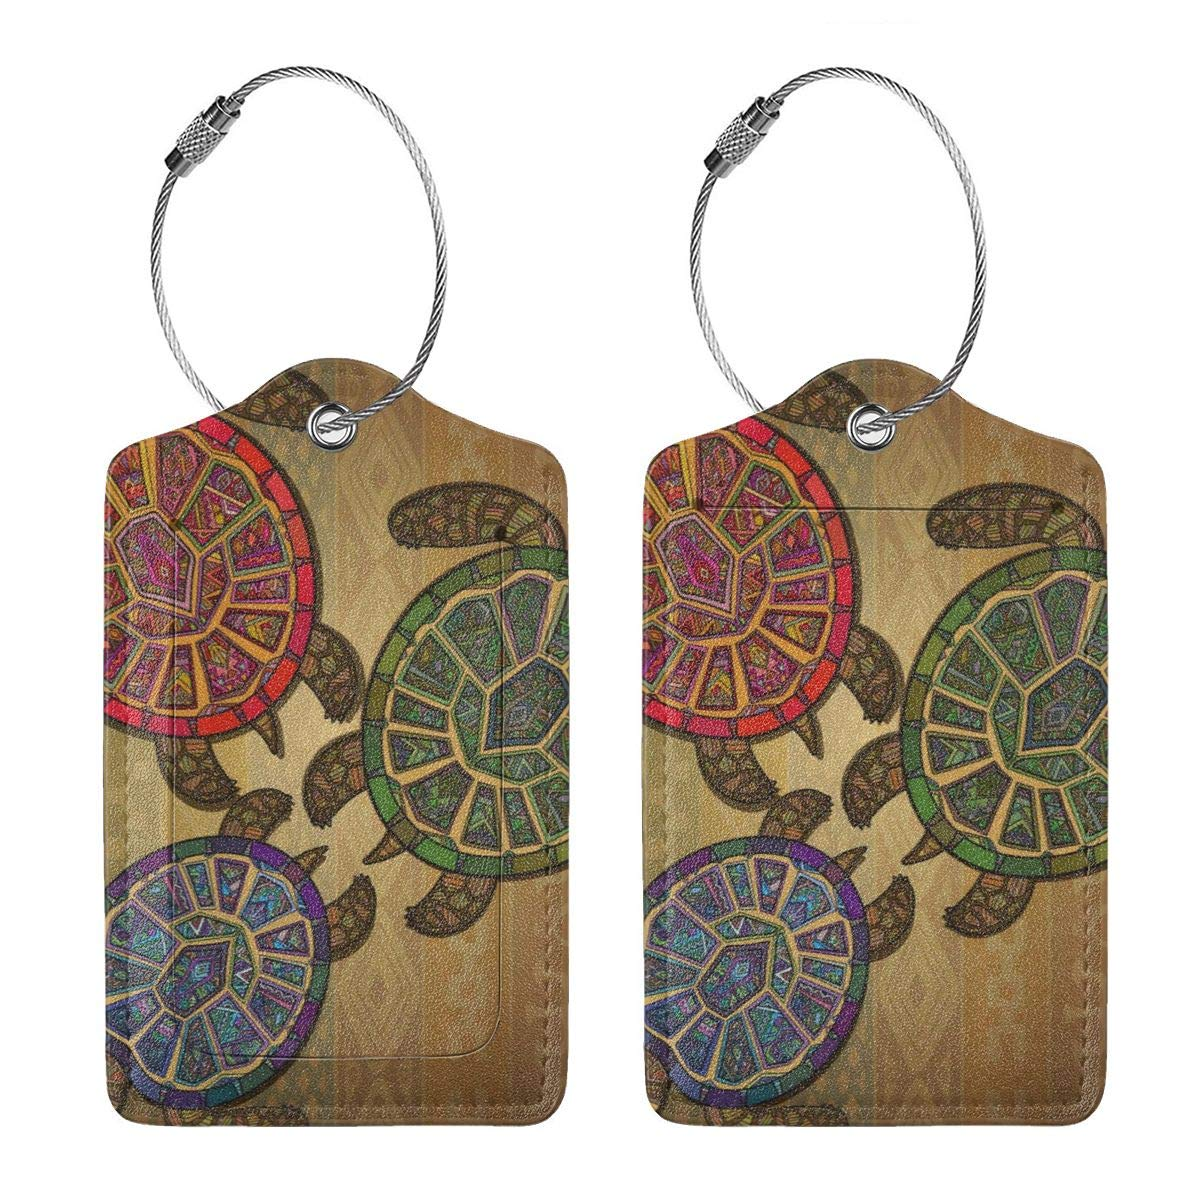 Leather Luggage Tag Three Turtles Ethic Tribal Ornate Style Luggage Tags For Suitcase Travel Lover Gifts For Men Women 4 PCS